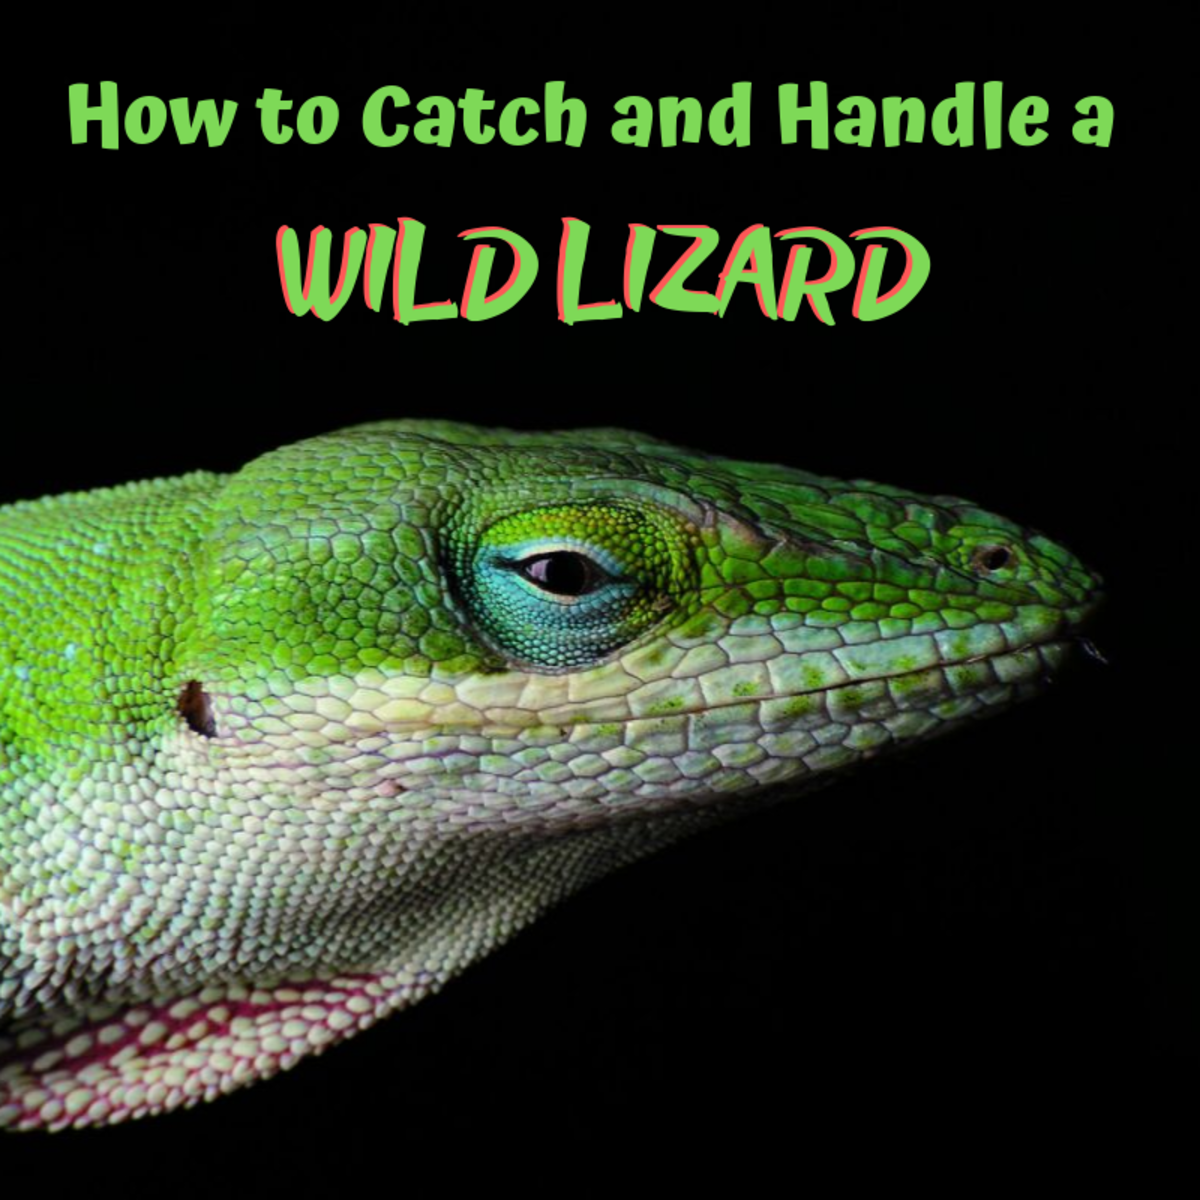 Learn how to safely locate, catch, handle, observe, and release a wild lizard.